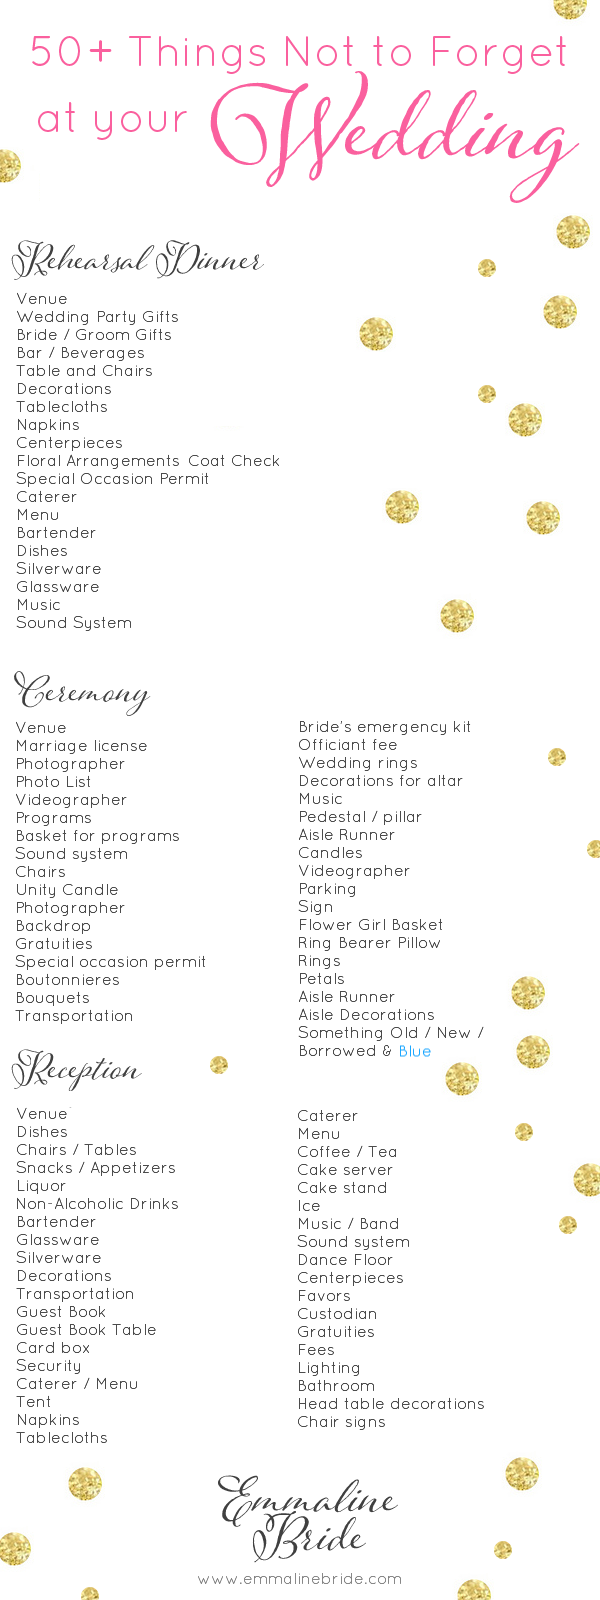 wedding photography poses checklist images